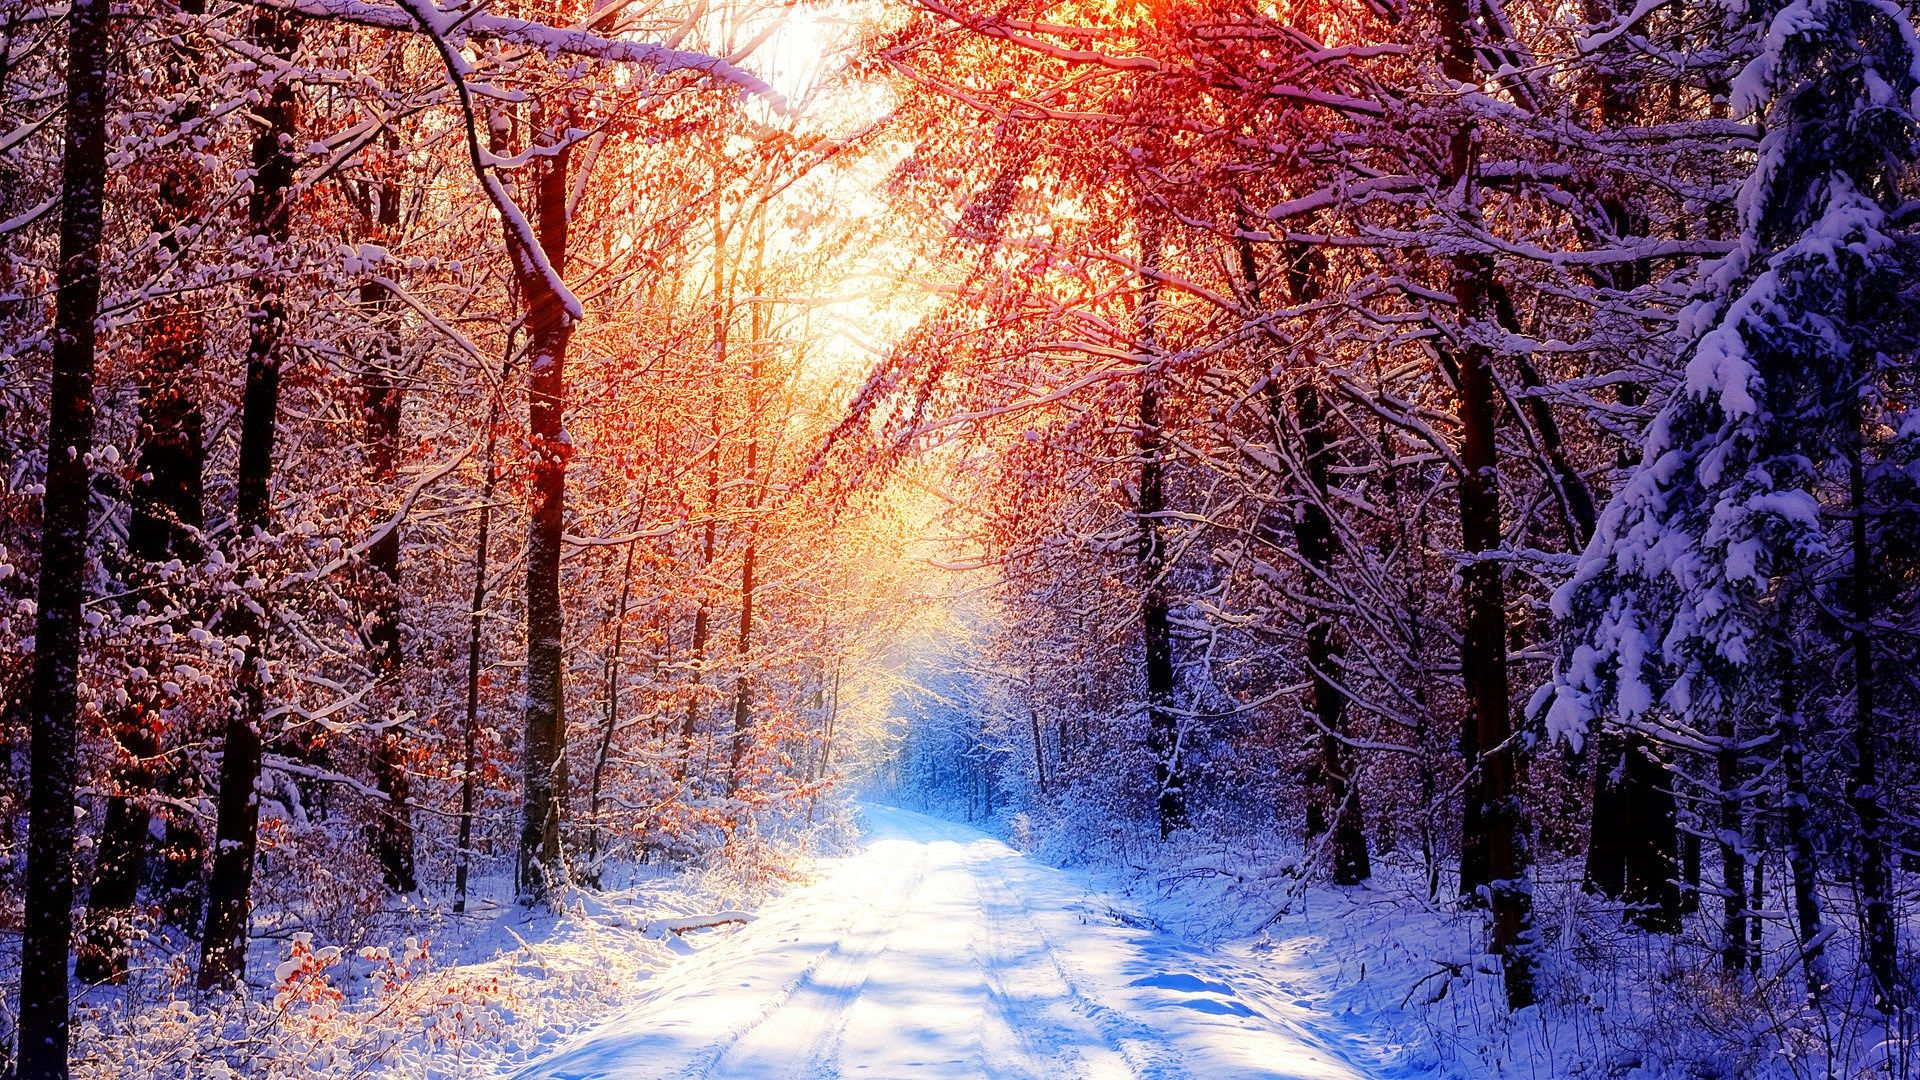 Hd Nature Winter Wallpaper Backgrounds 1920x1080 Zimnie Sceny Zimnij Zakat Pejzazhi